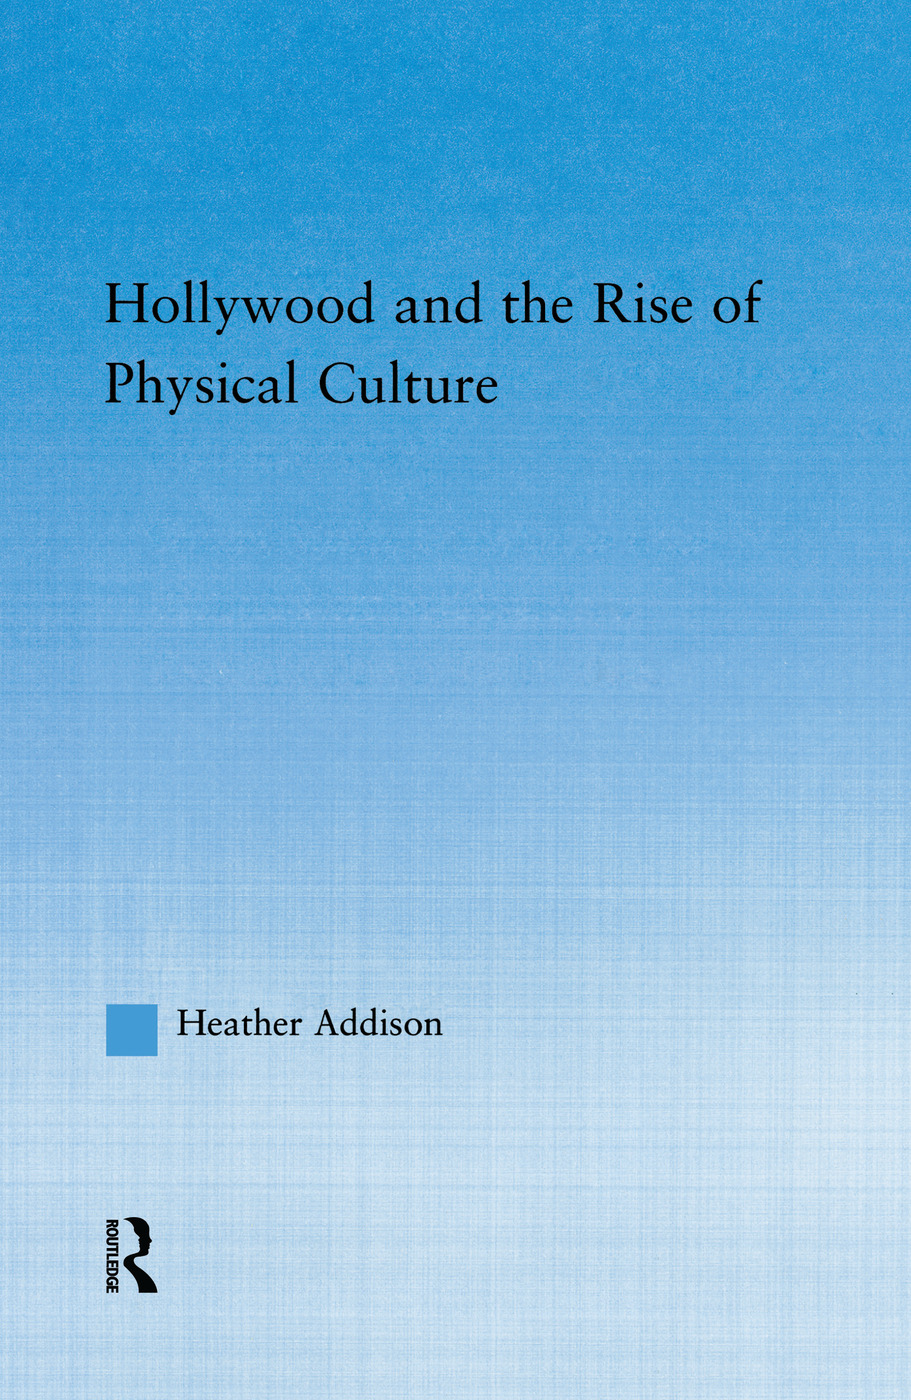 Hollywood and the Rise of Physical Culture book cover